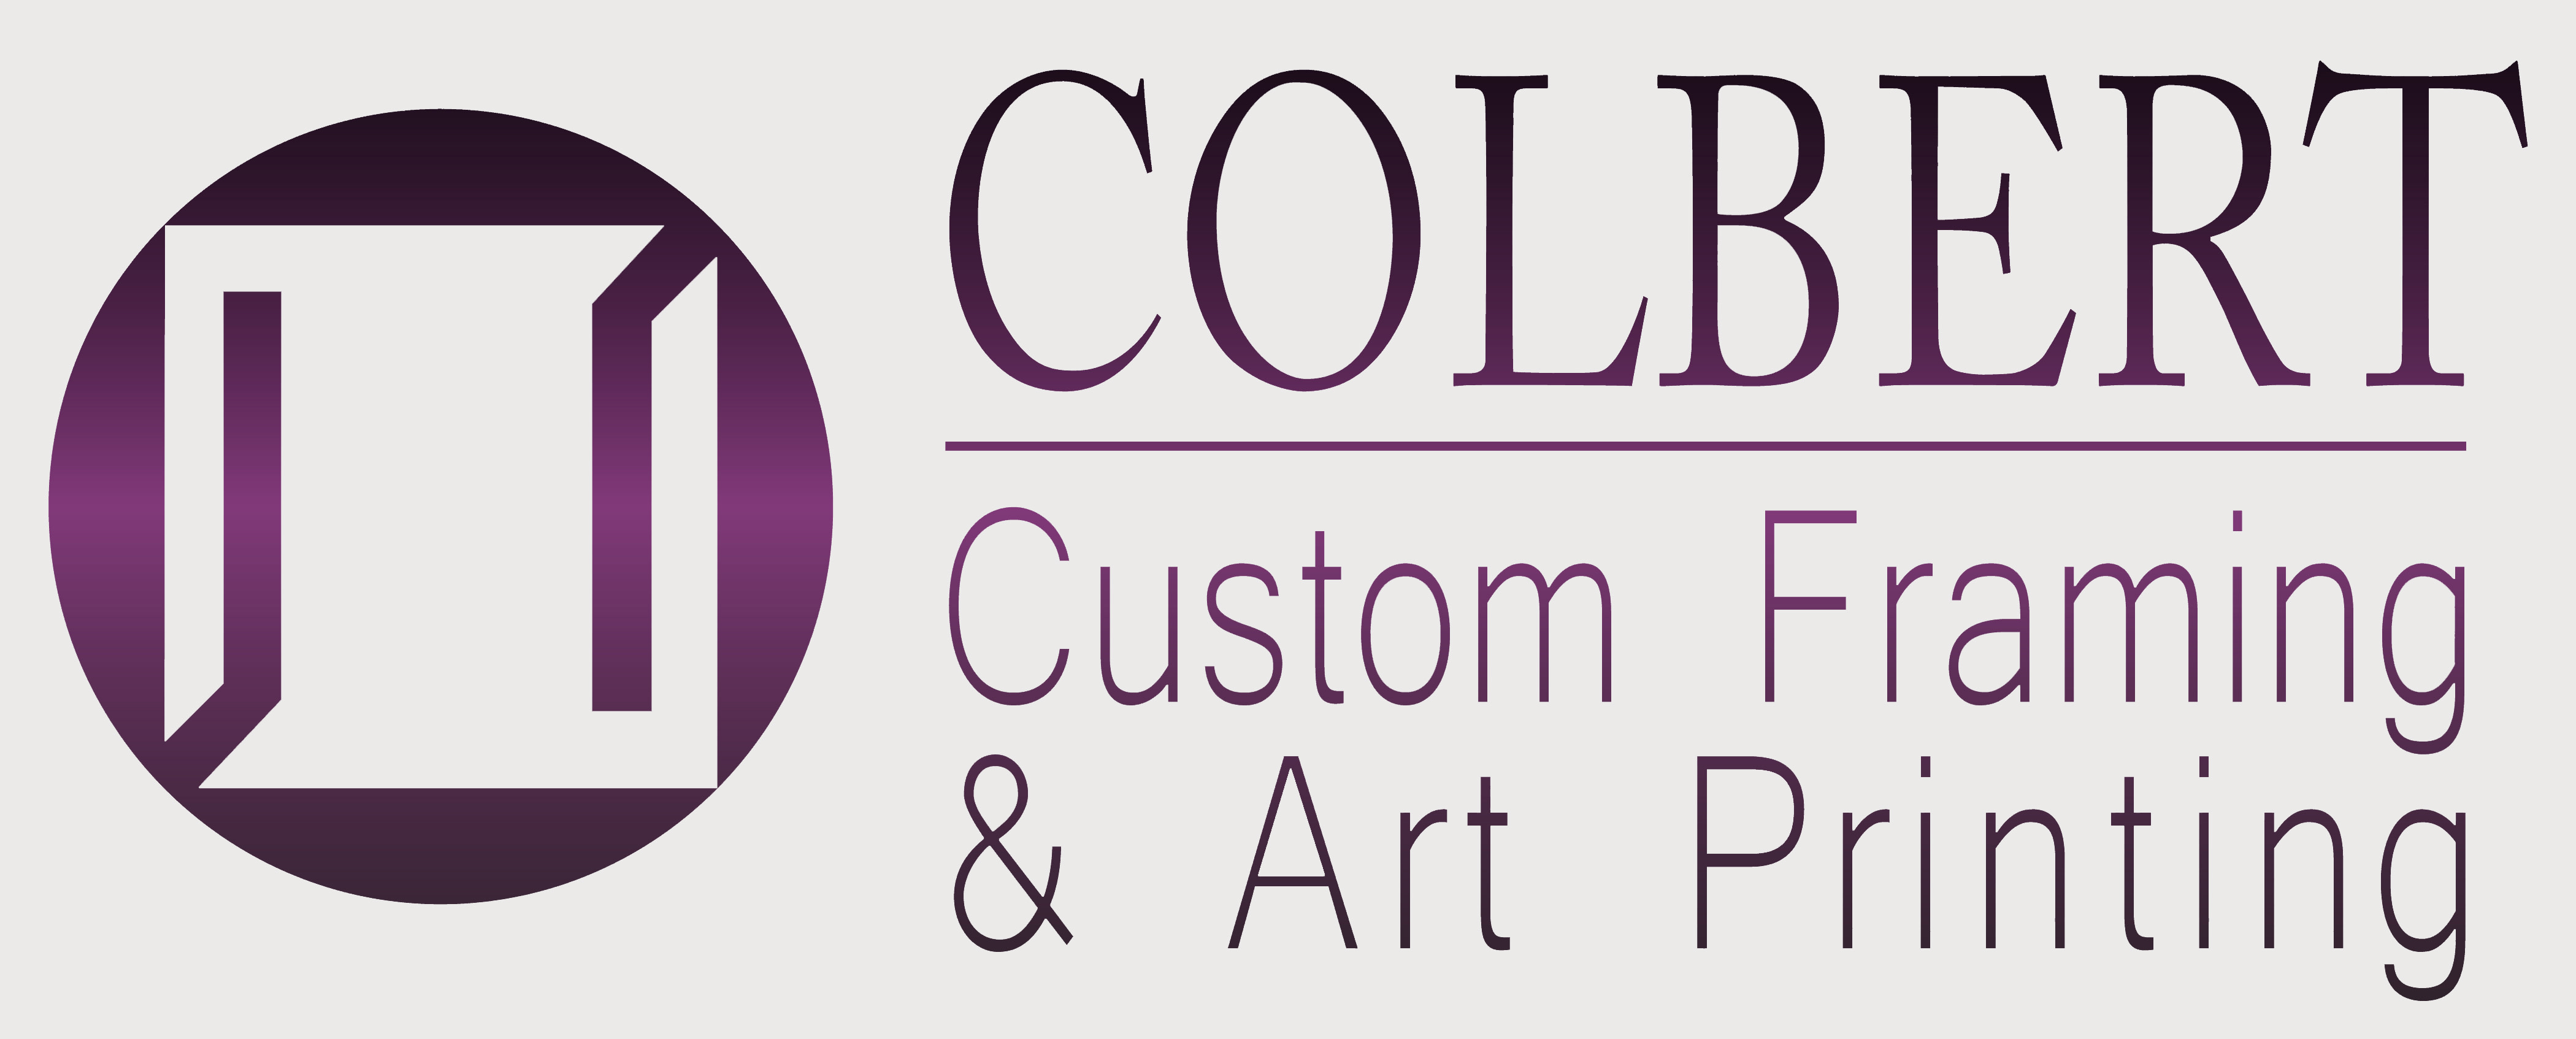 Colbert Custom Framing & Art Printing